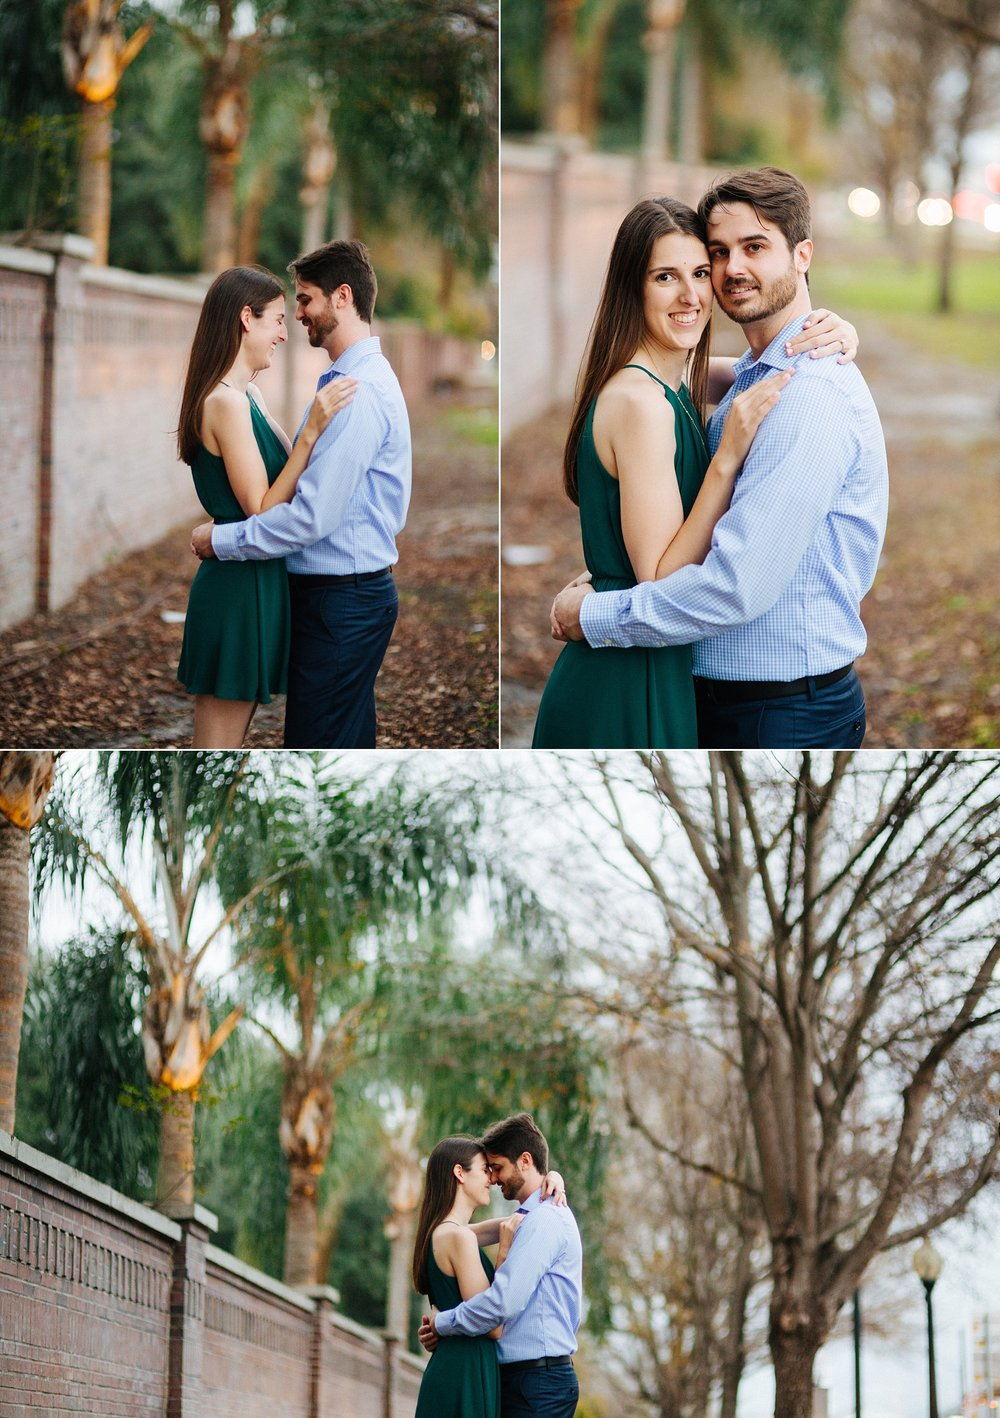 Jake & Katie Photography Seminole Heights Engagement Photos David & Cailyn-021.jpg